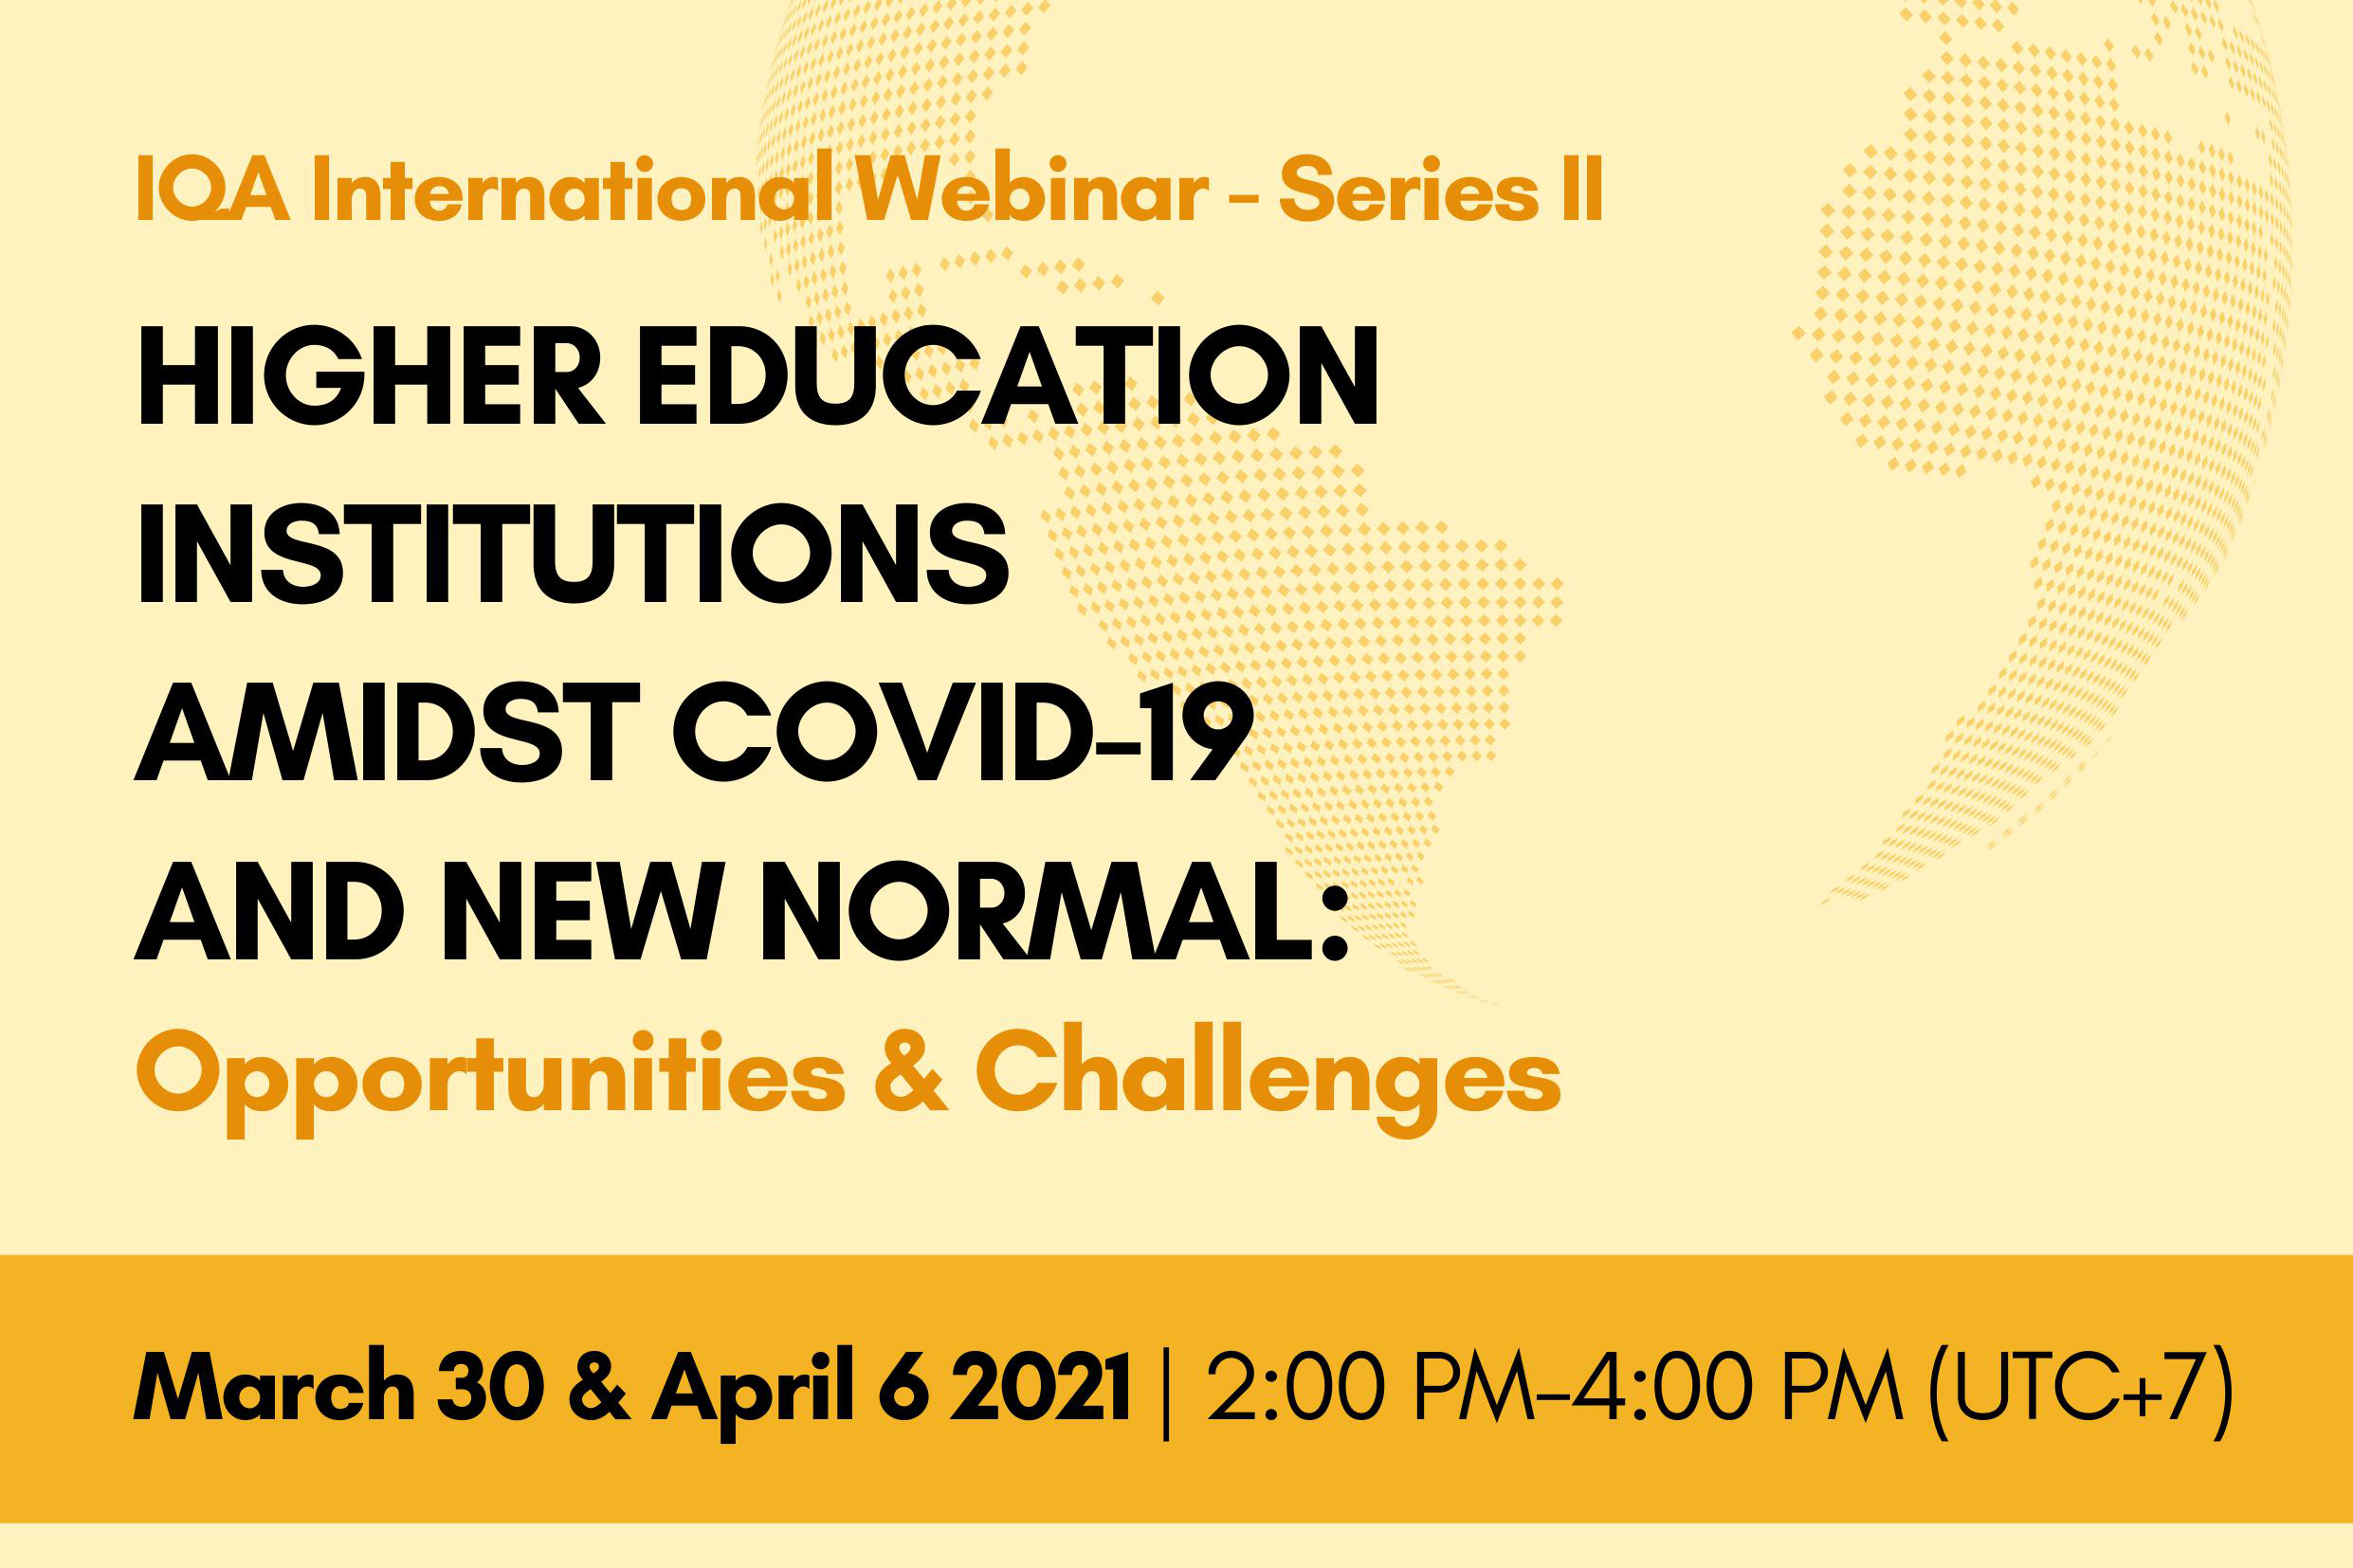 IQA International Webinar- Series II